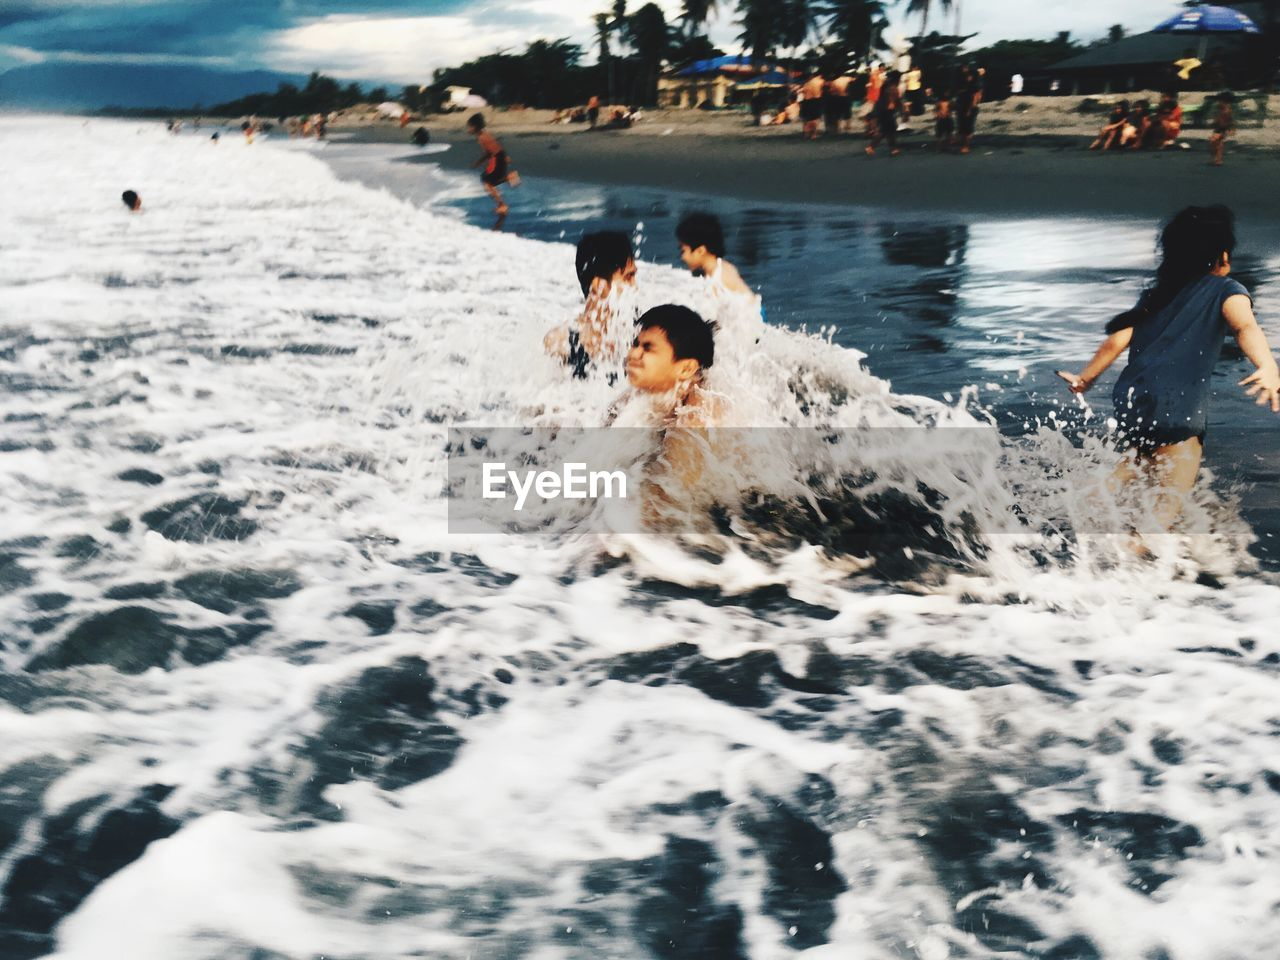 water, motion, real people, sea, group of people, enjoyment, waterfront, leisure activity, sport, lifestyles, nature, people, day, crowd, swimming, men, splashing, incidental people, outdoors